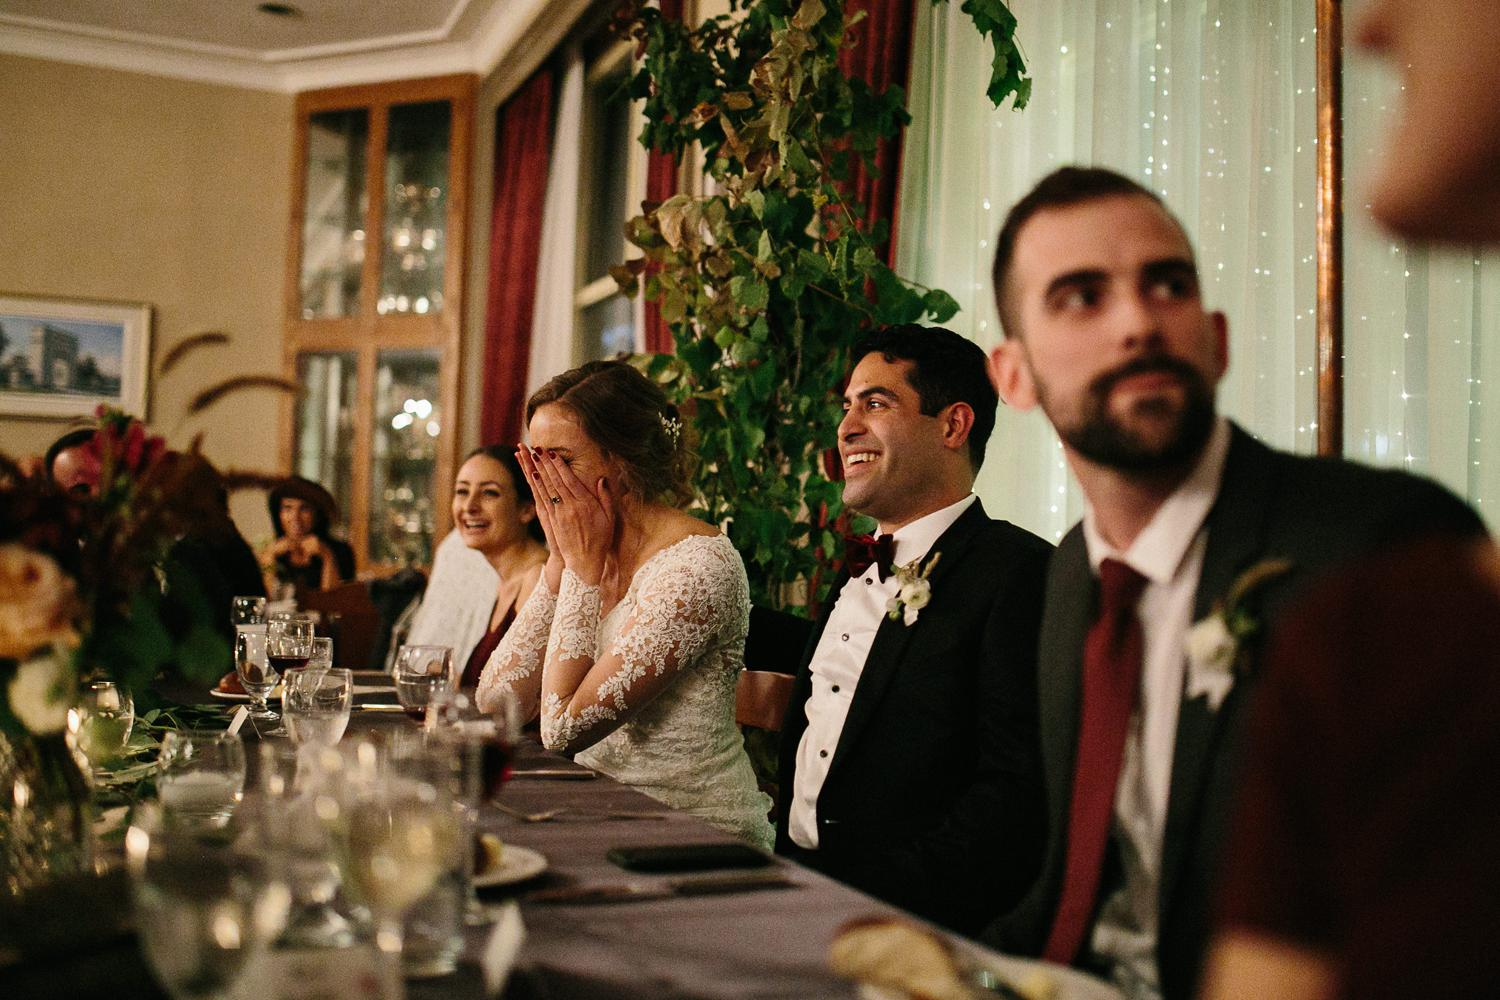 Ali___Steph_Wedding_649.jpg